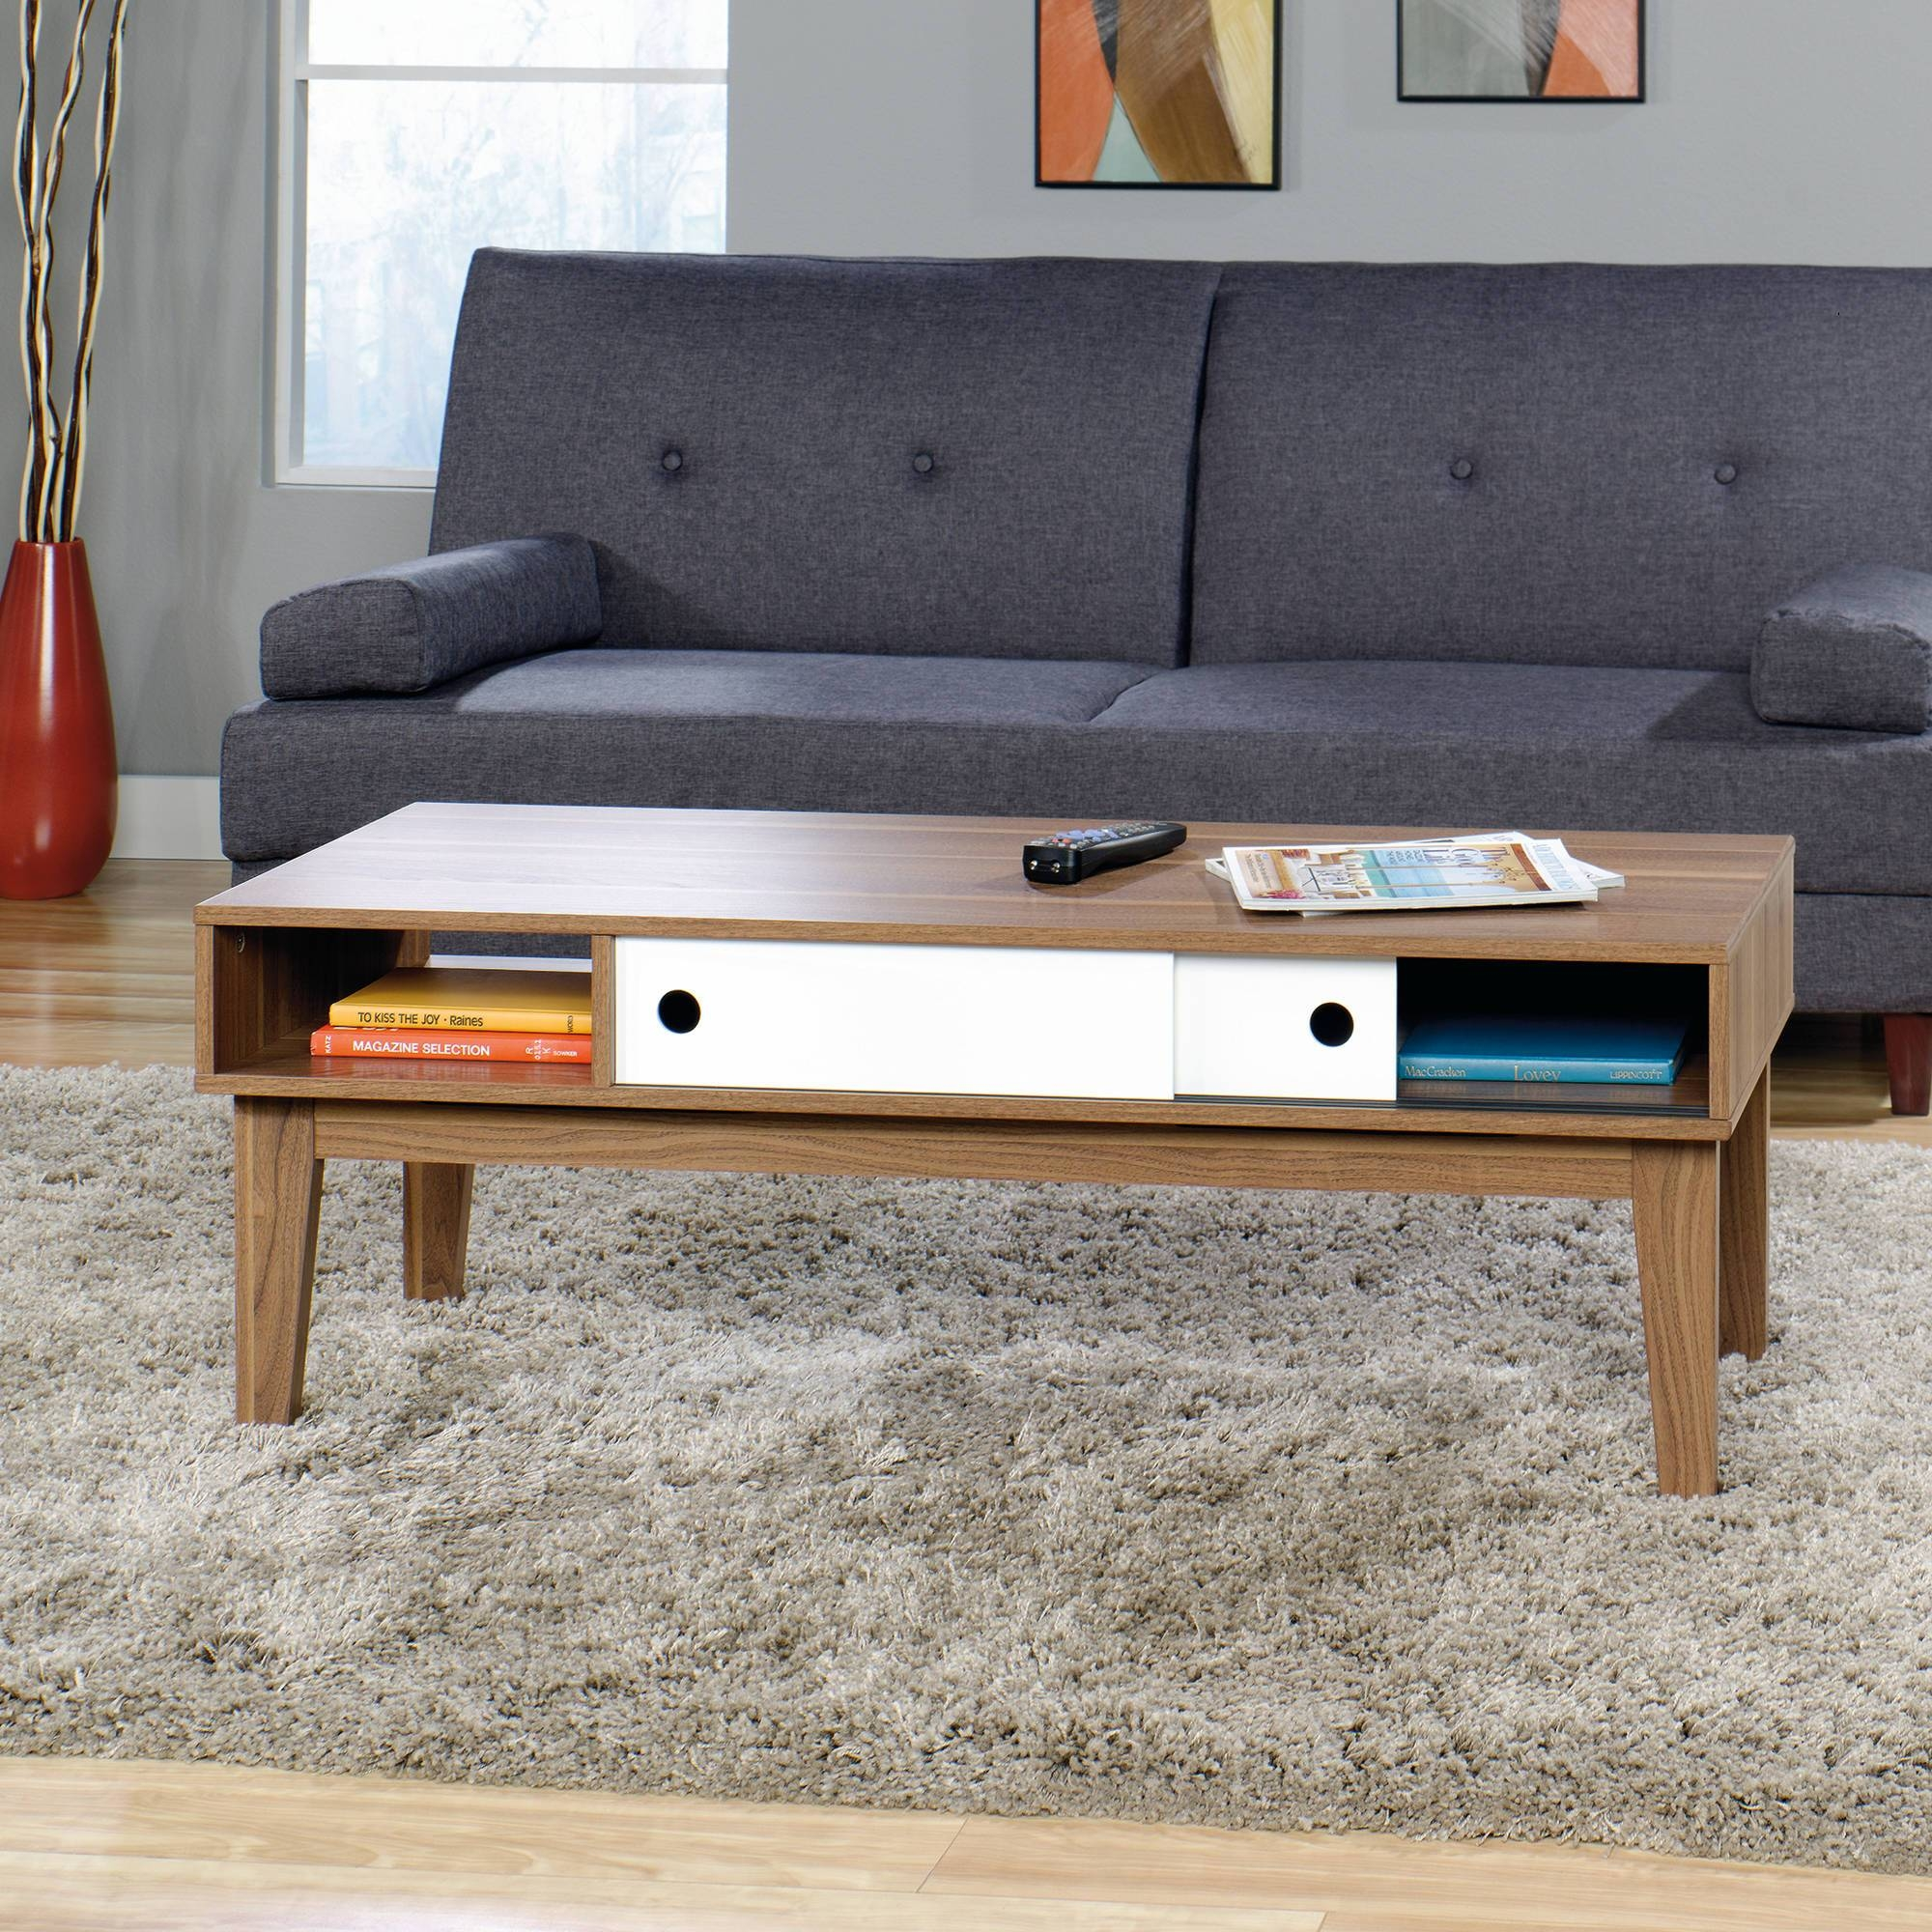 Sauder Soft Modern Coffee Table, Walnut Finish With White Accent regarding Modern Coffee Table (Image 14 of 15)